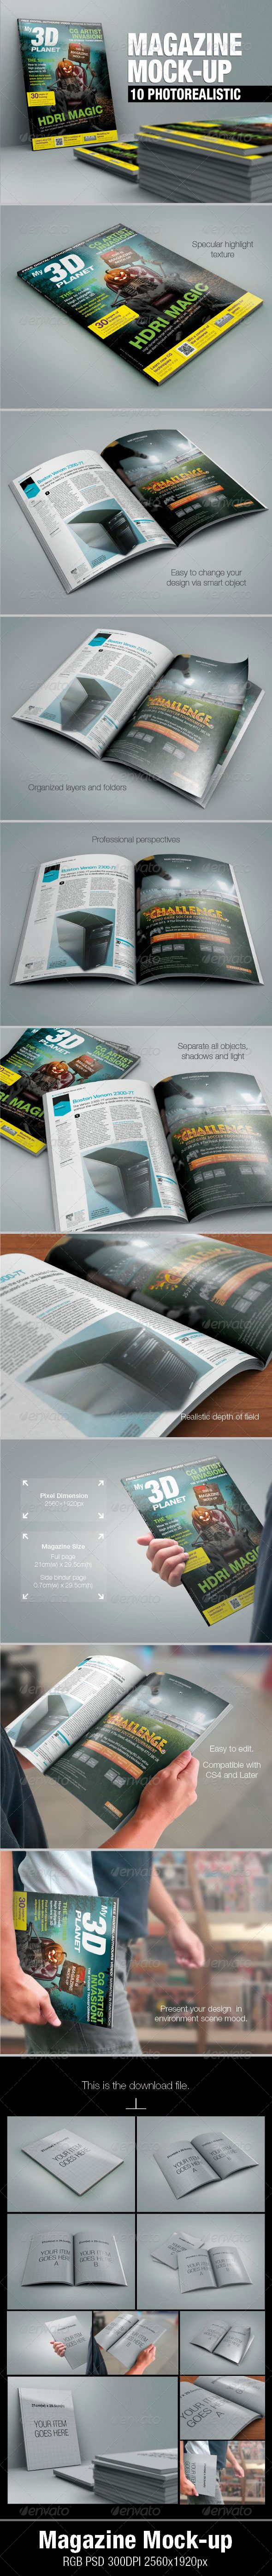 Magazine in environment mock up template